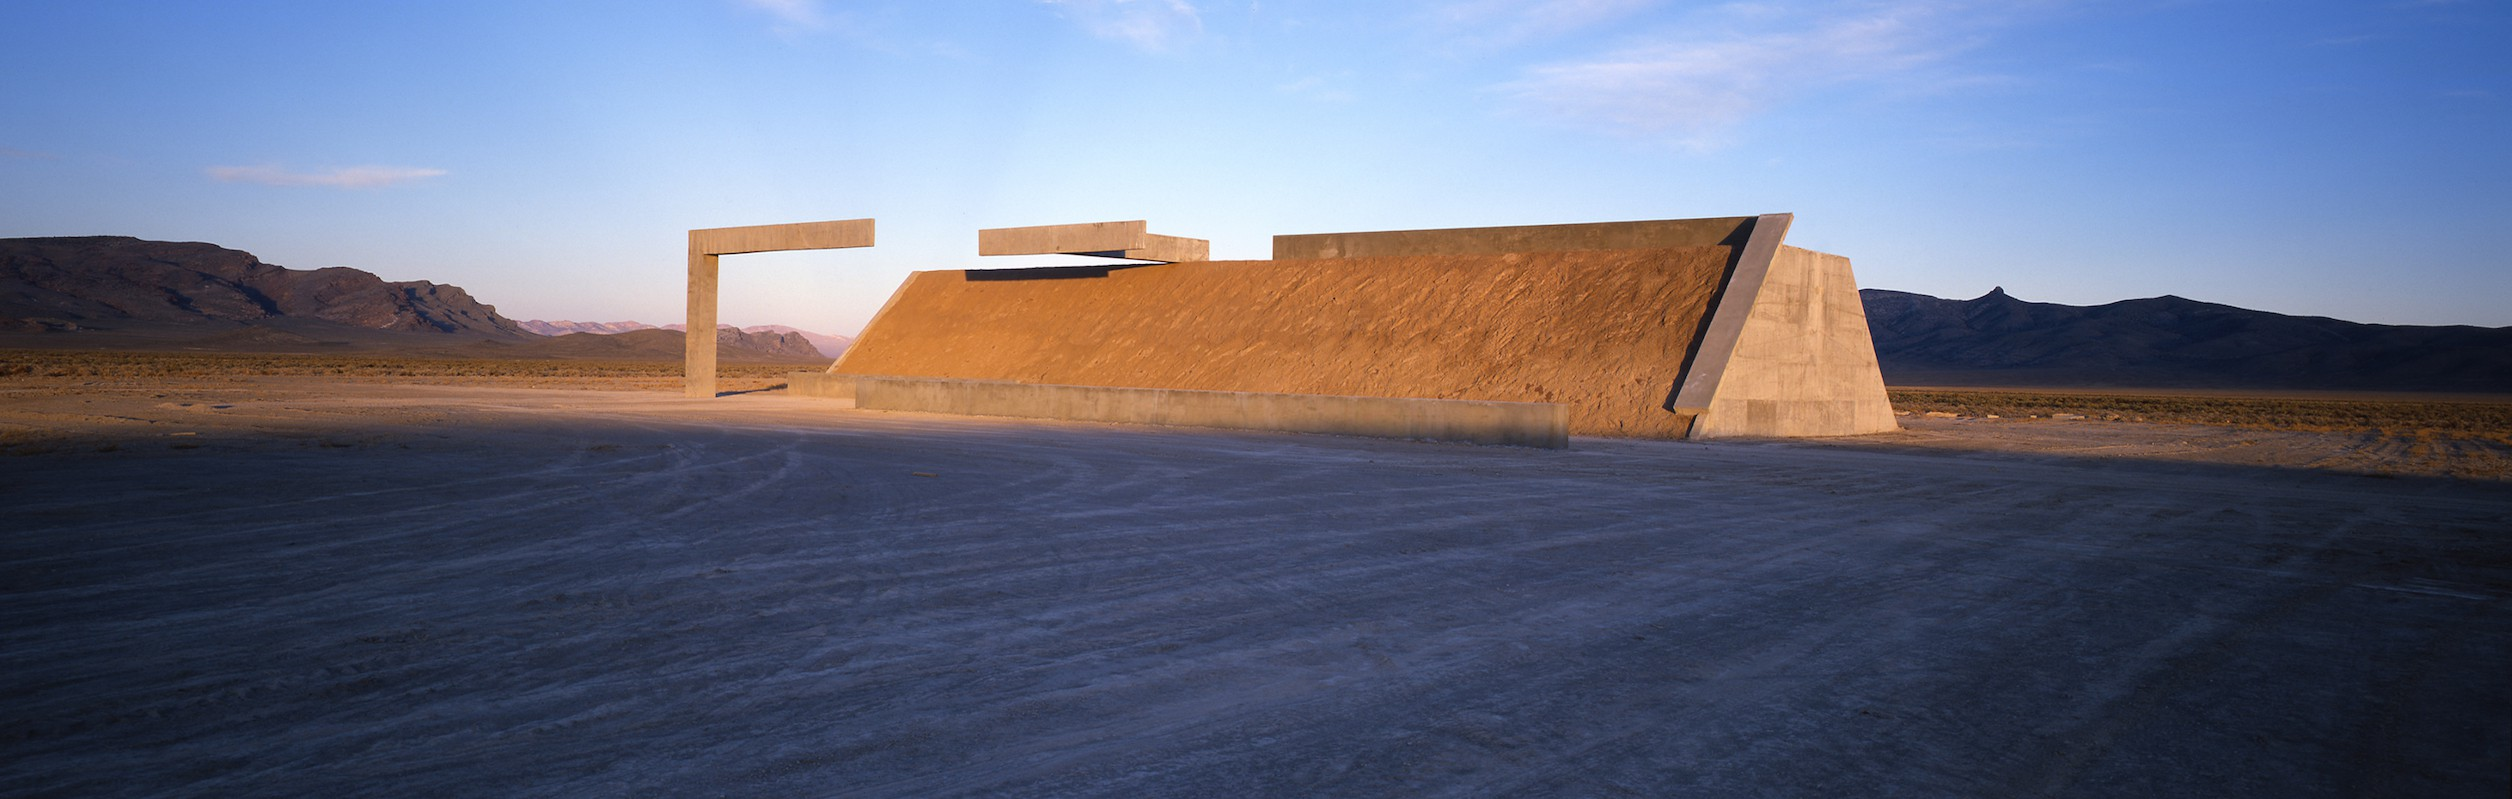 Michael Heizer, Complex One of City,1972-ongoing |© Michael Heizer/Tripple Aught Foundation